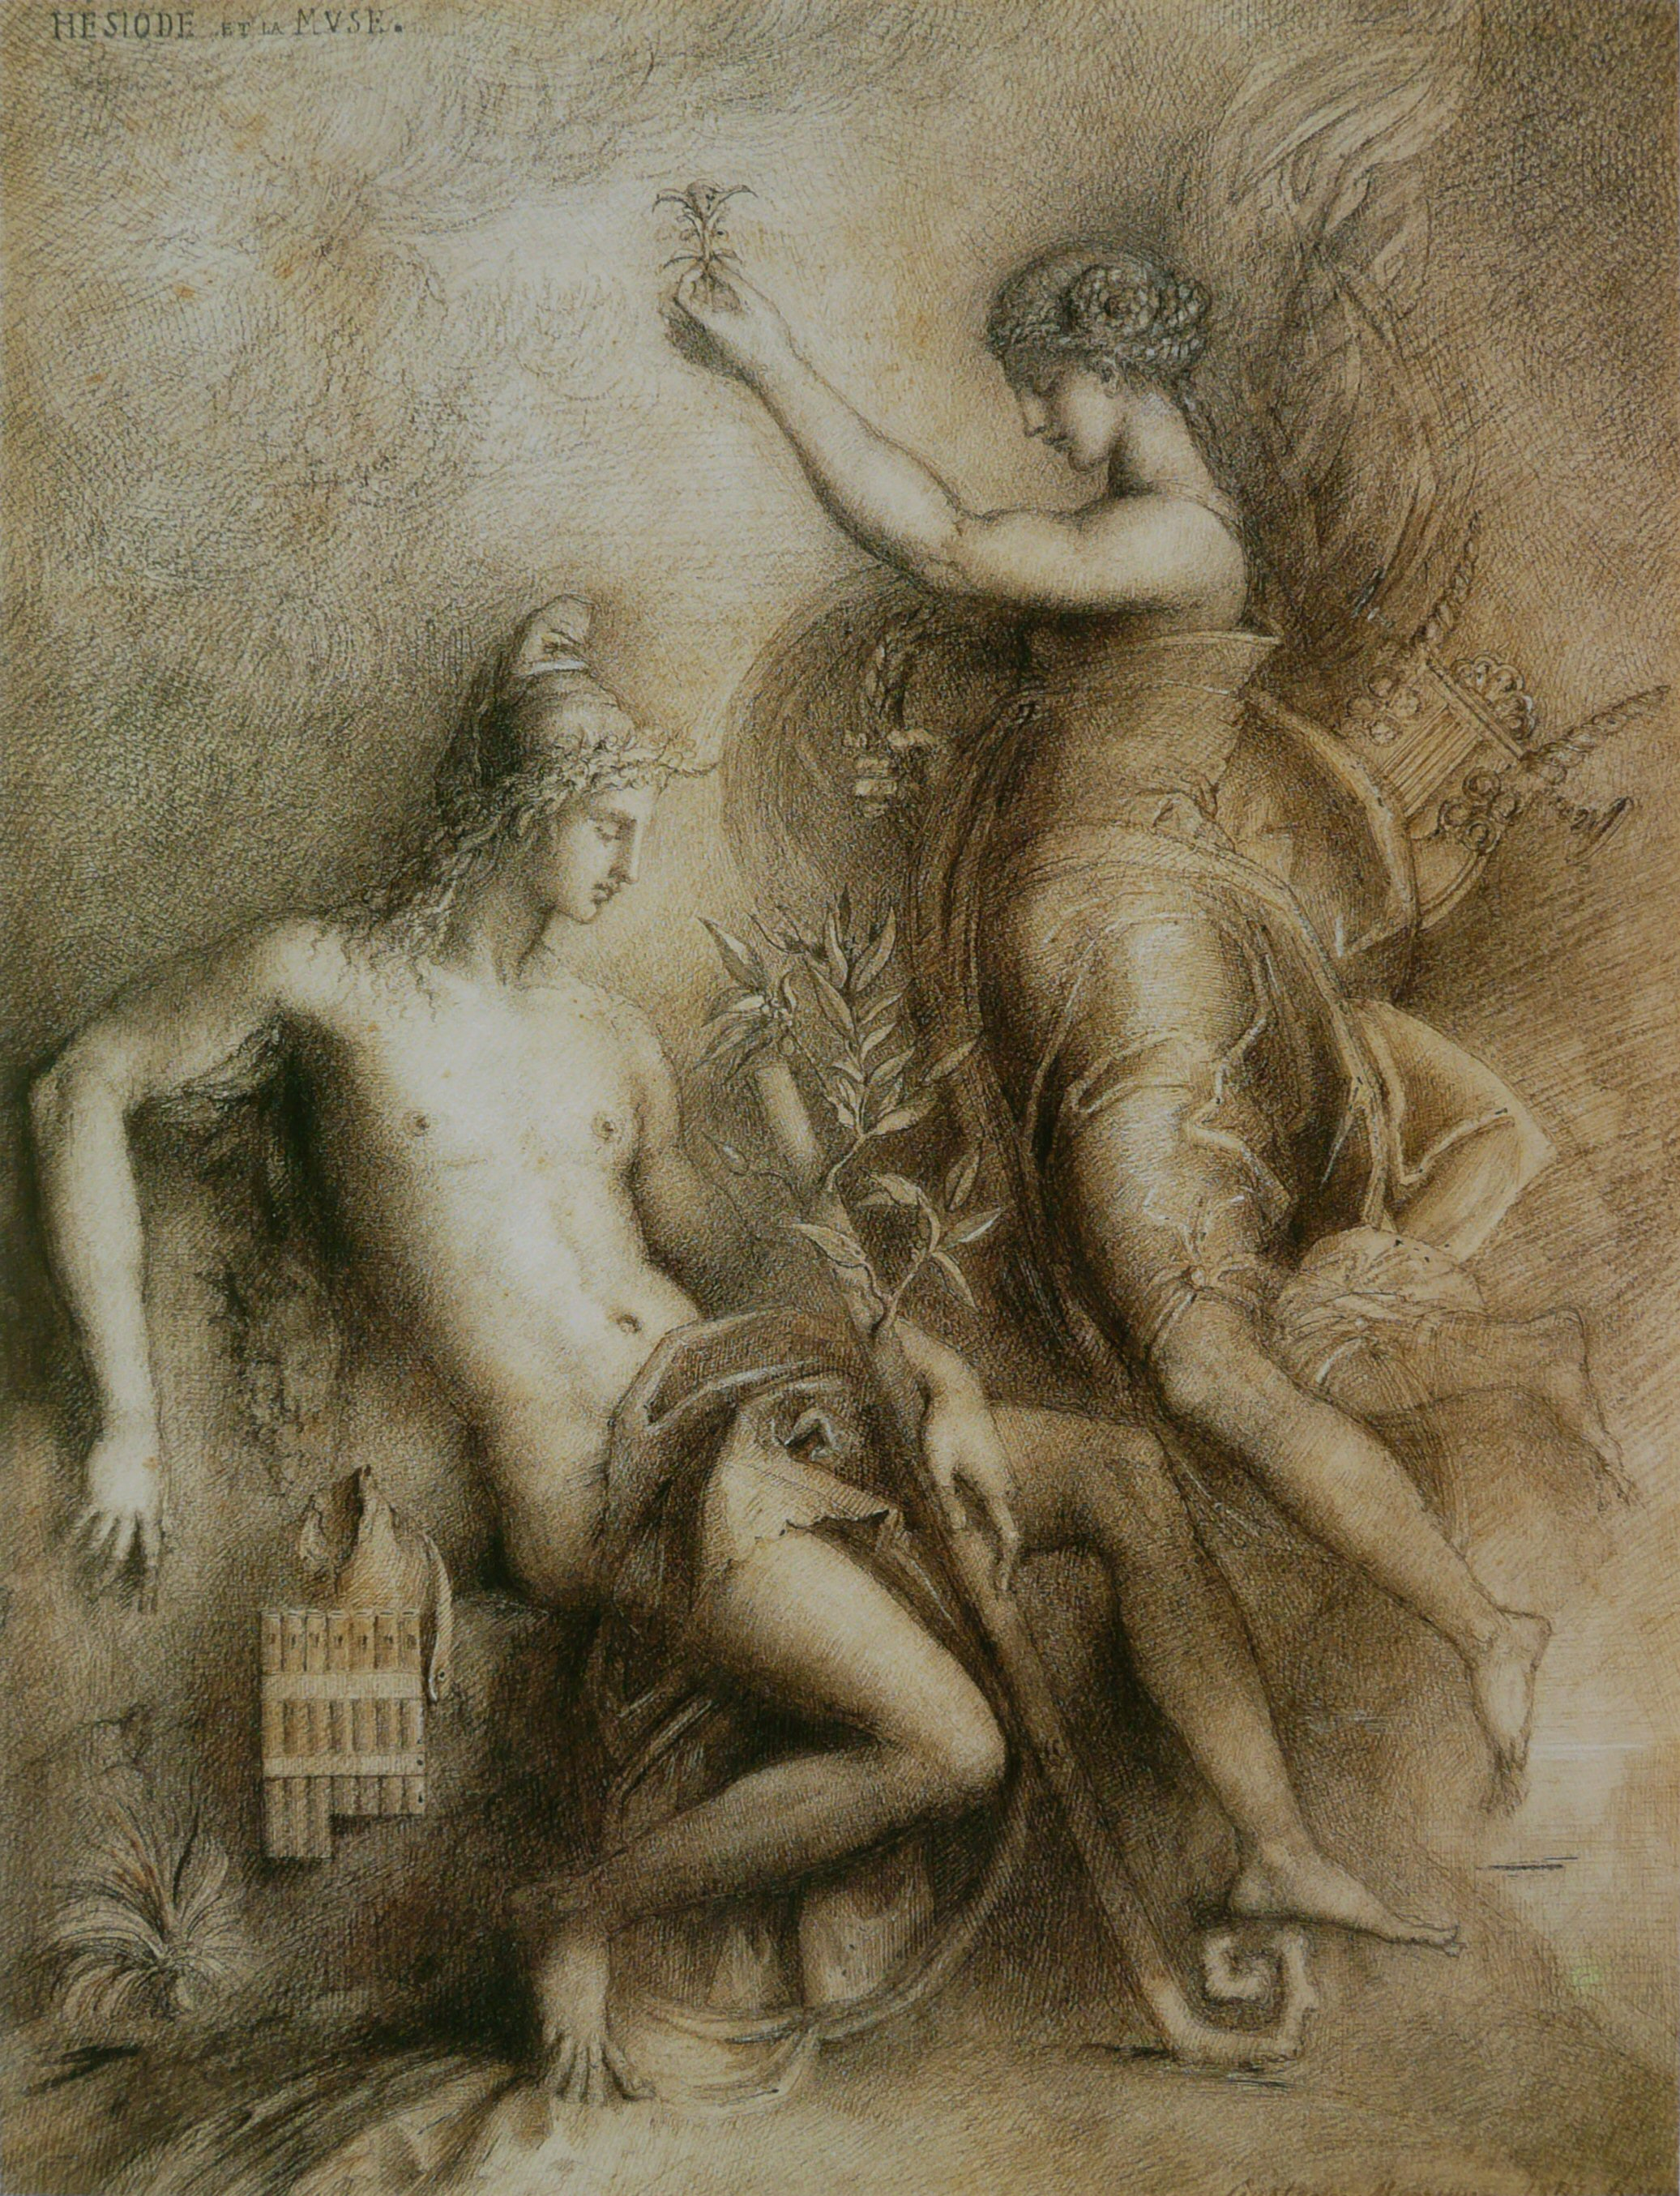 https://i0.wp.com/upload.wikimedia.org/wikipedia/commons/7/76/Gustave_Moreau_-_H%C3%A9siode_et_la_Muse.jpg